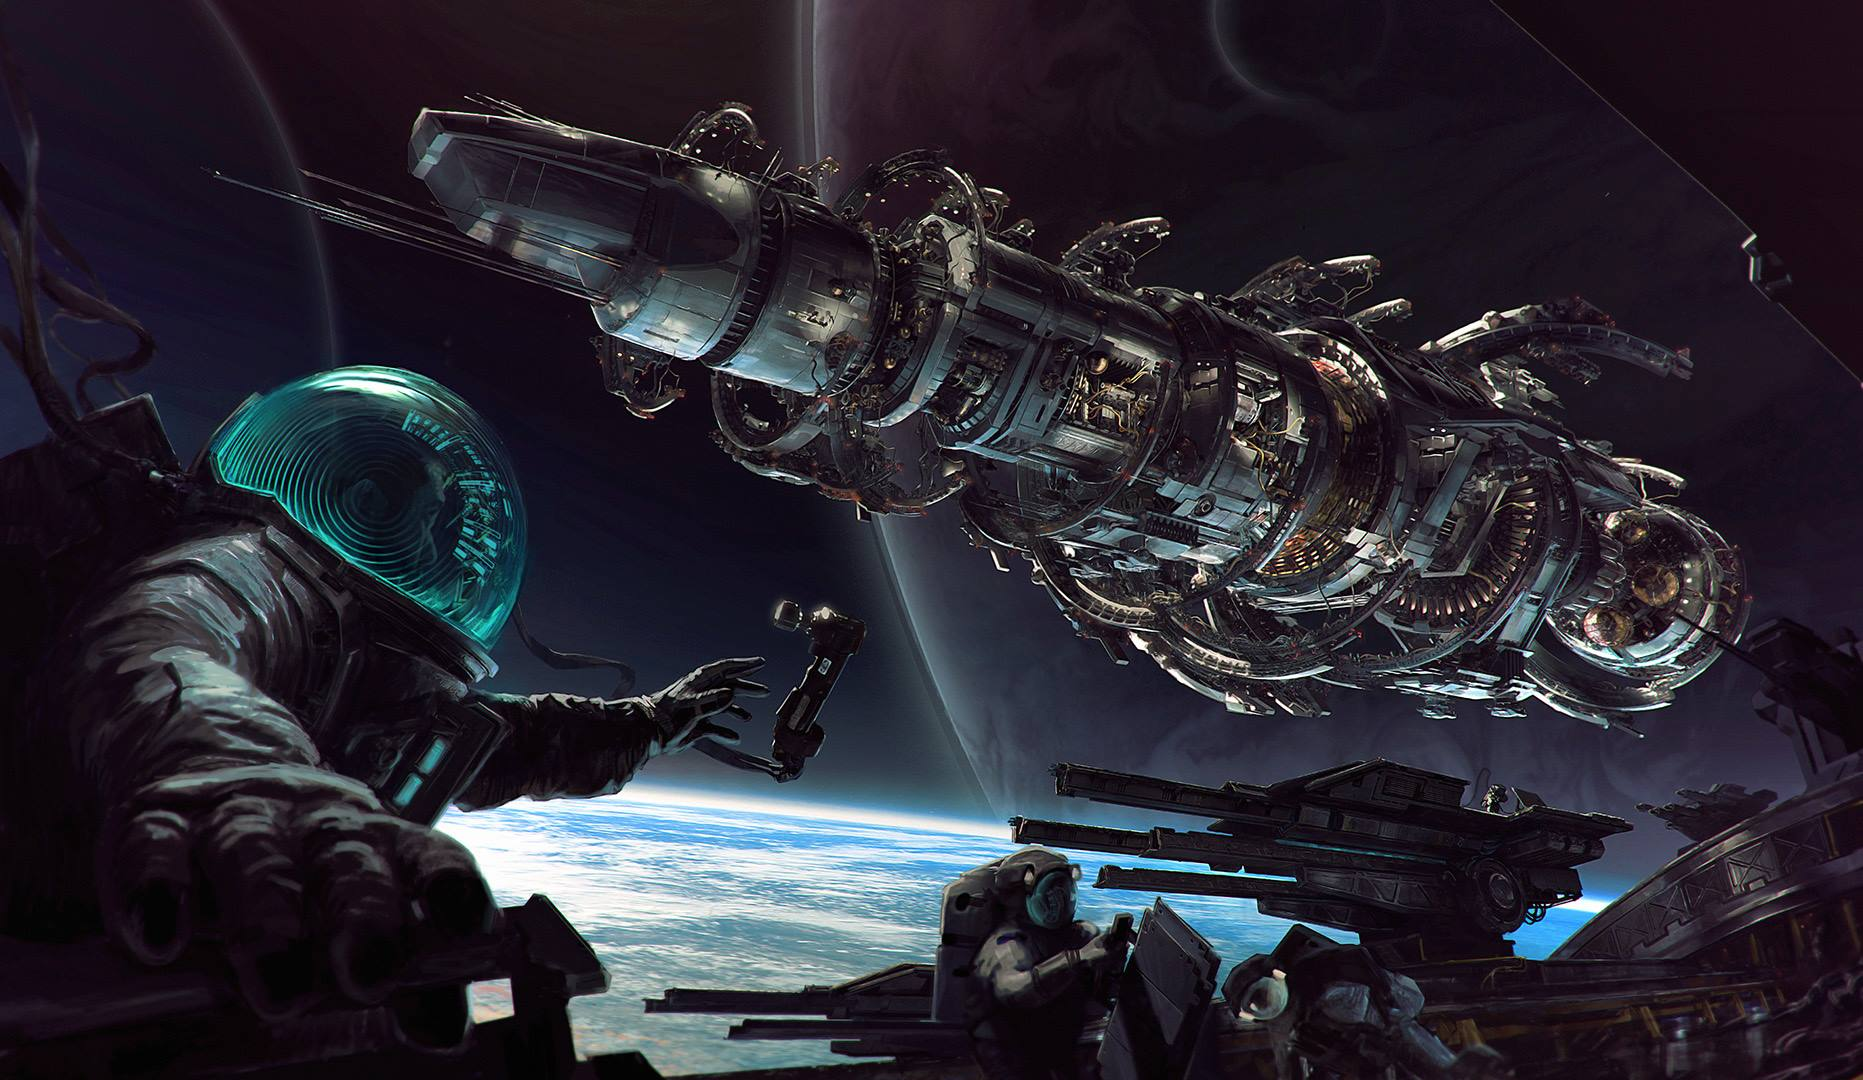 Fractured space is the new game from strike suit zero devs vg247